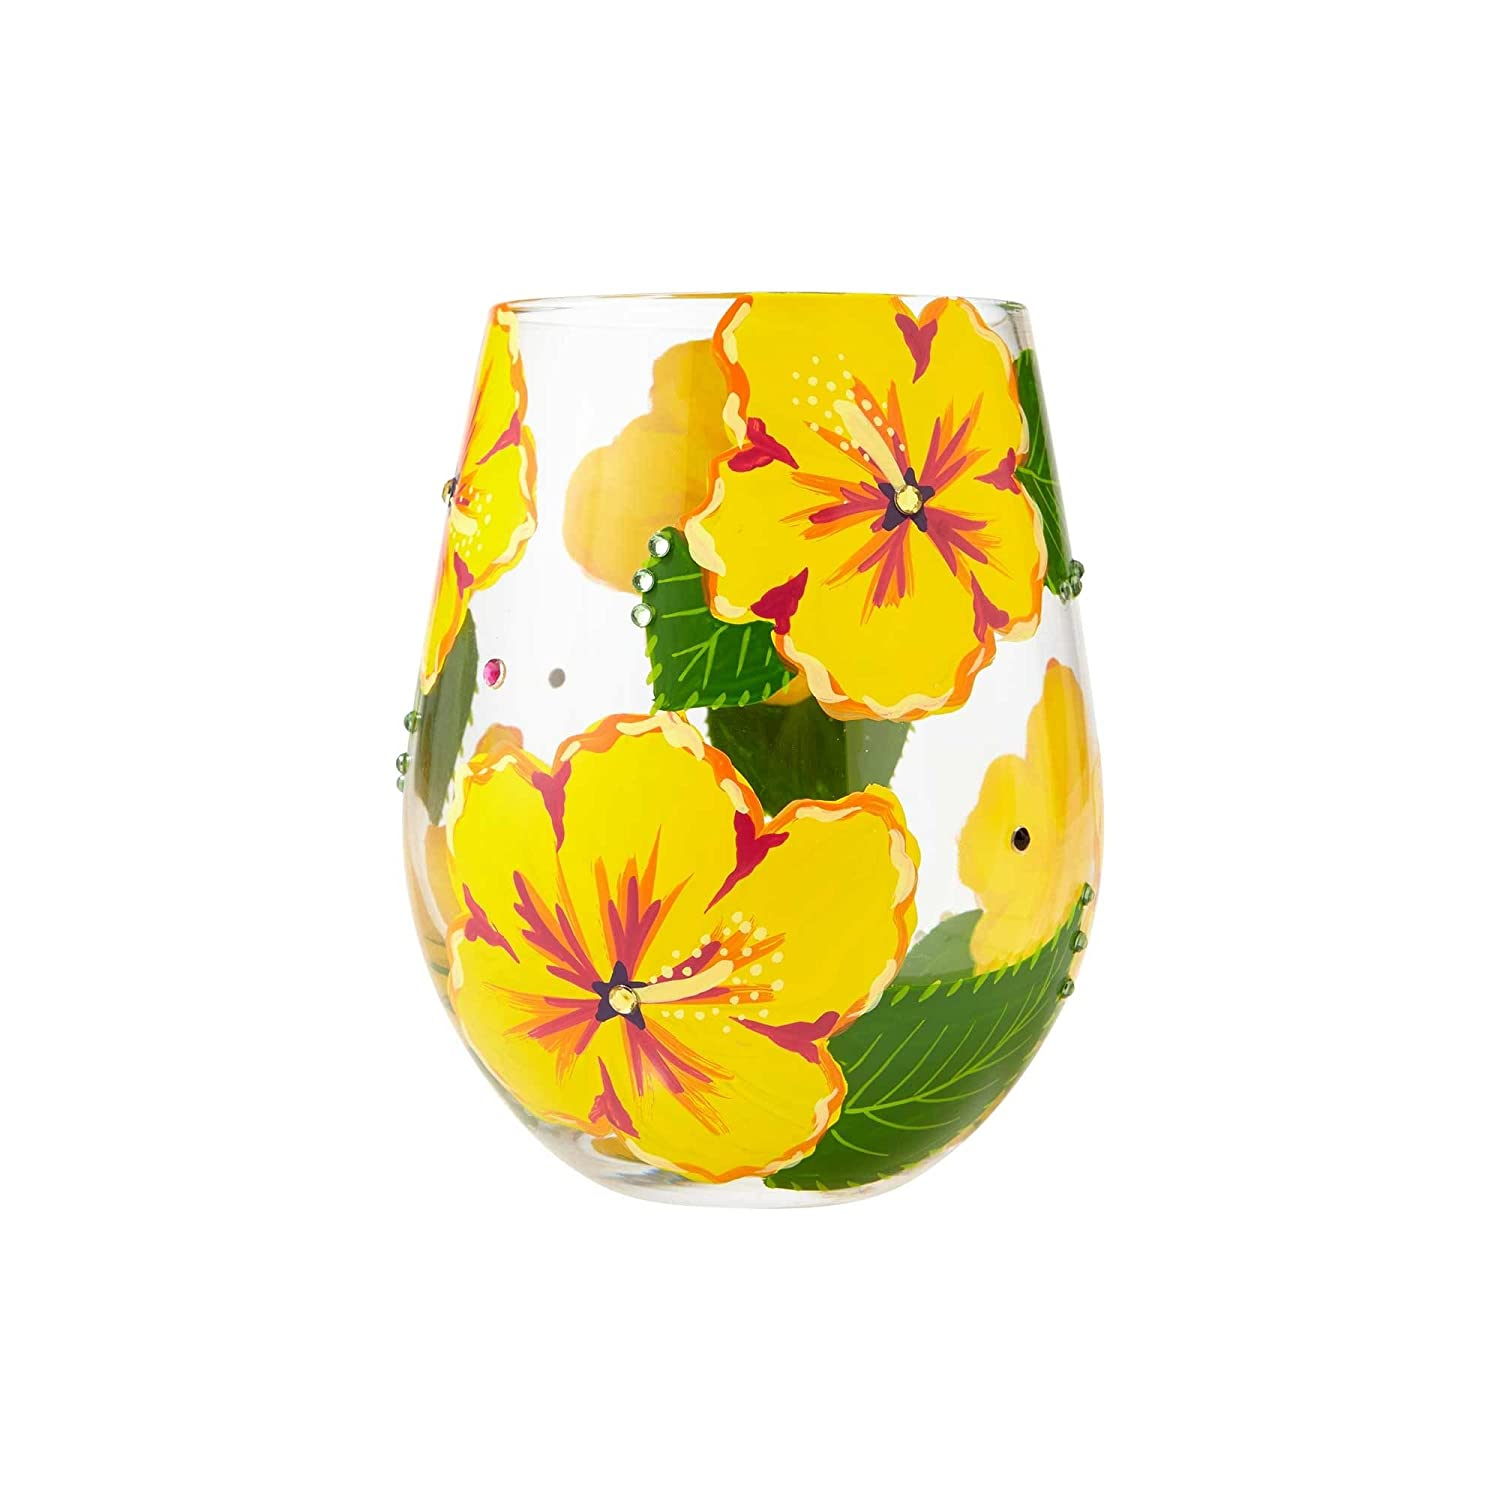 Lolita Hibiscus Stemless Glass, Multi-Colour, 100 x 100 x 125 cm Enesco 6001315